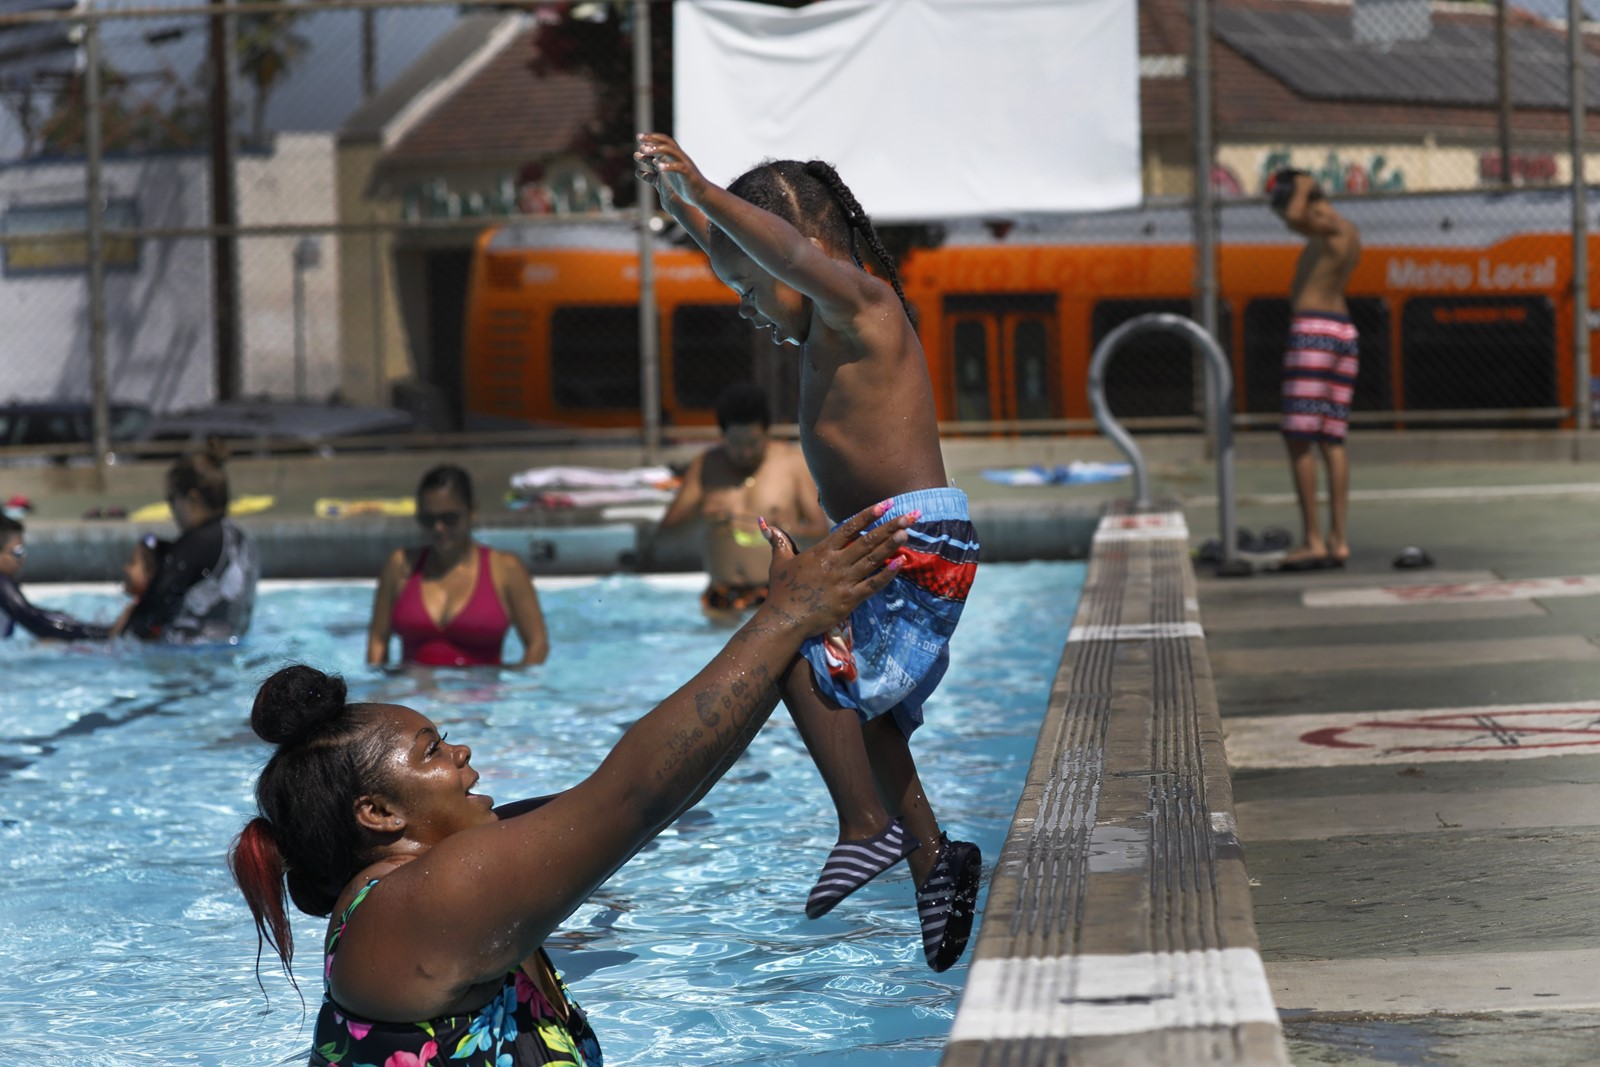 Ashley Moore plays in the pool with her 2-year-old son, Alijah, in Highland Park on Wednesday. — Photograph: Francine Orr/Los Angeles Times.